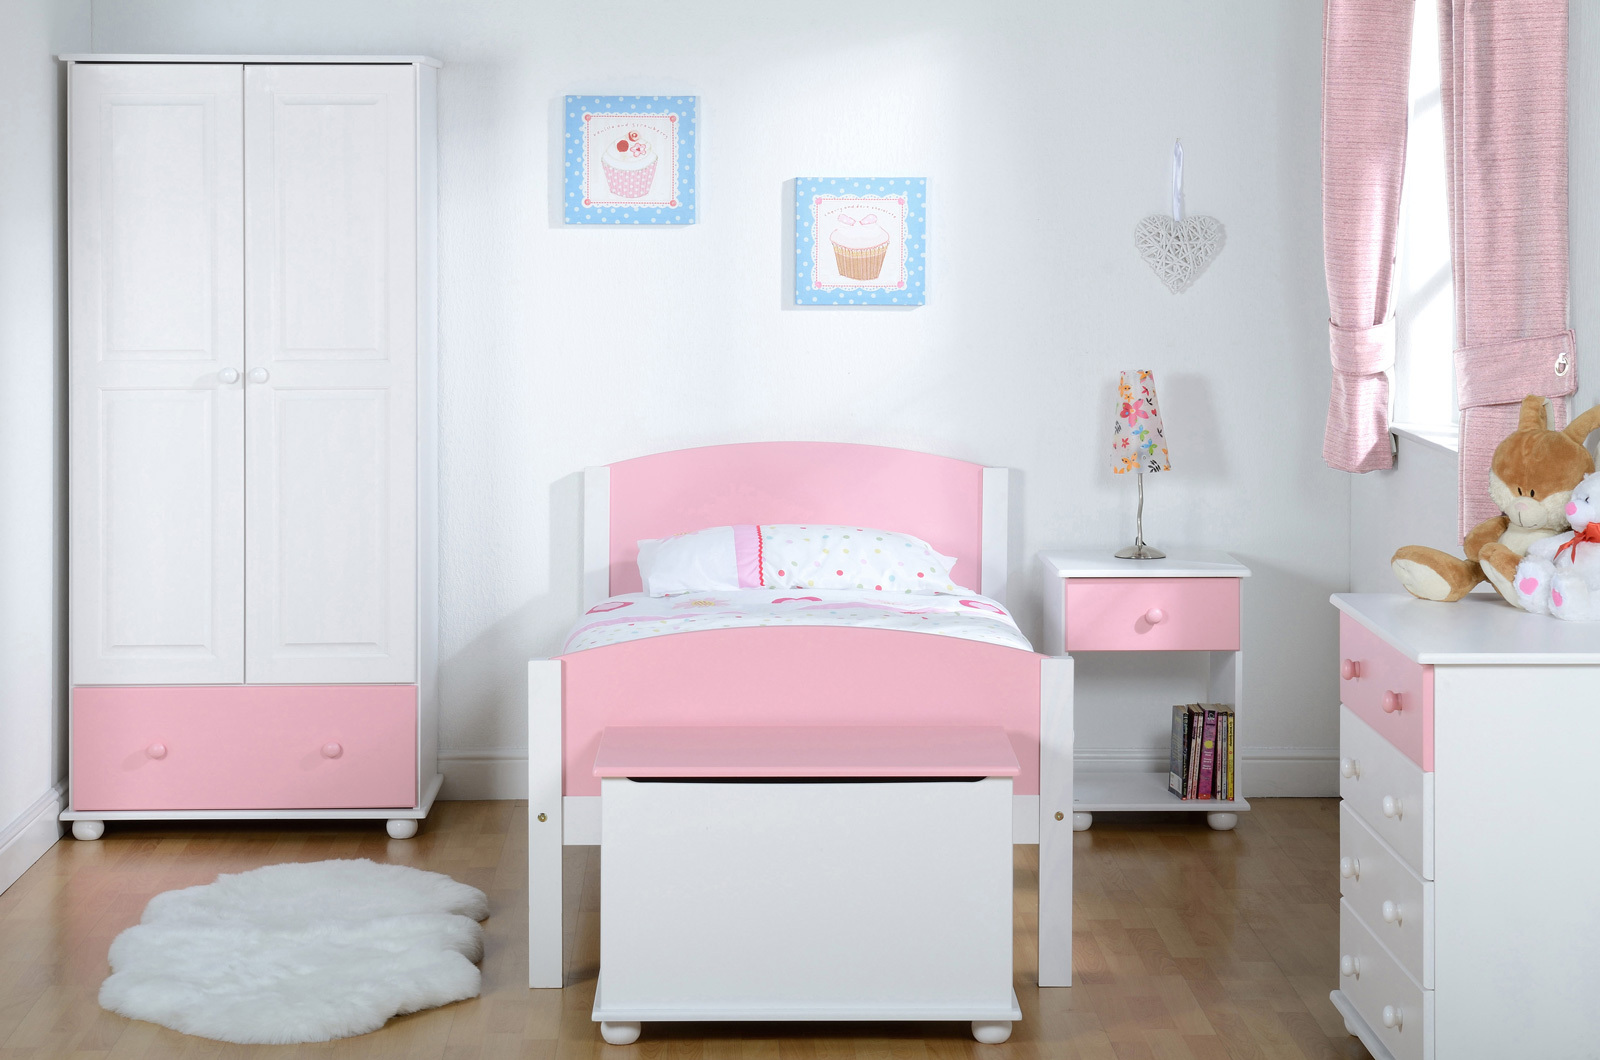 kids bedroom furniture pink white wardrobe bed chest of